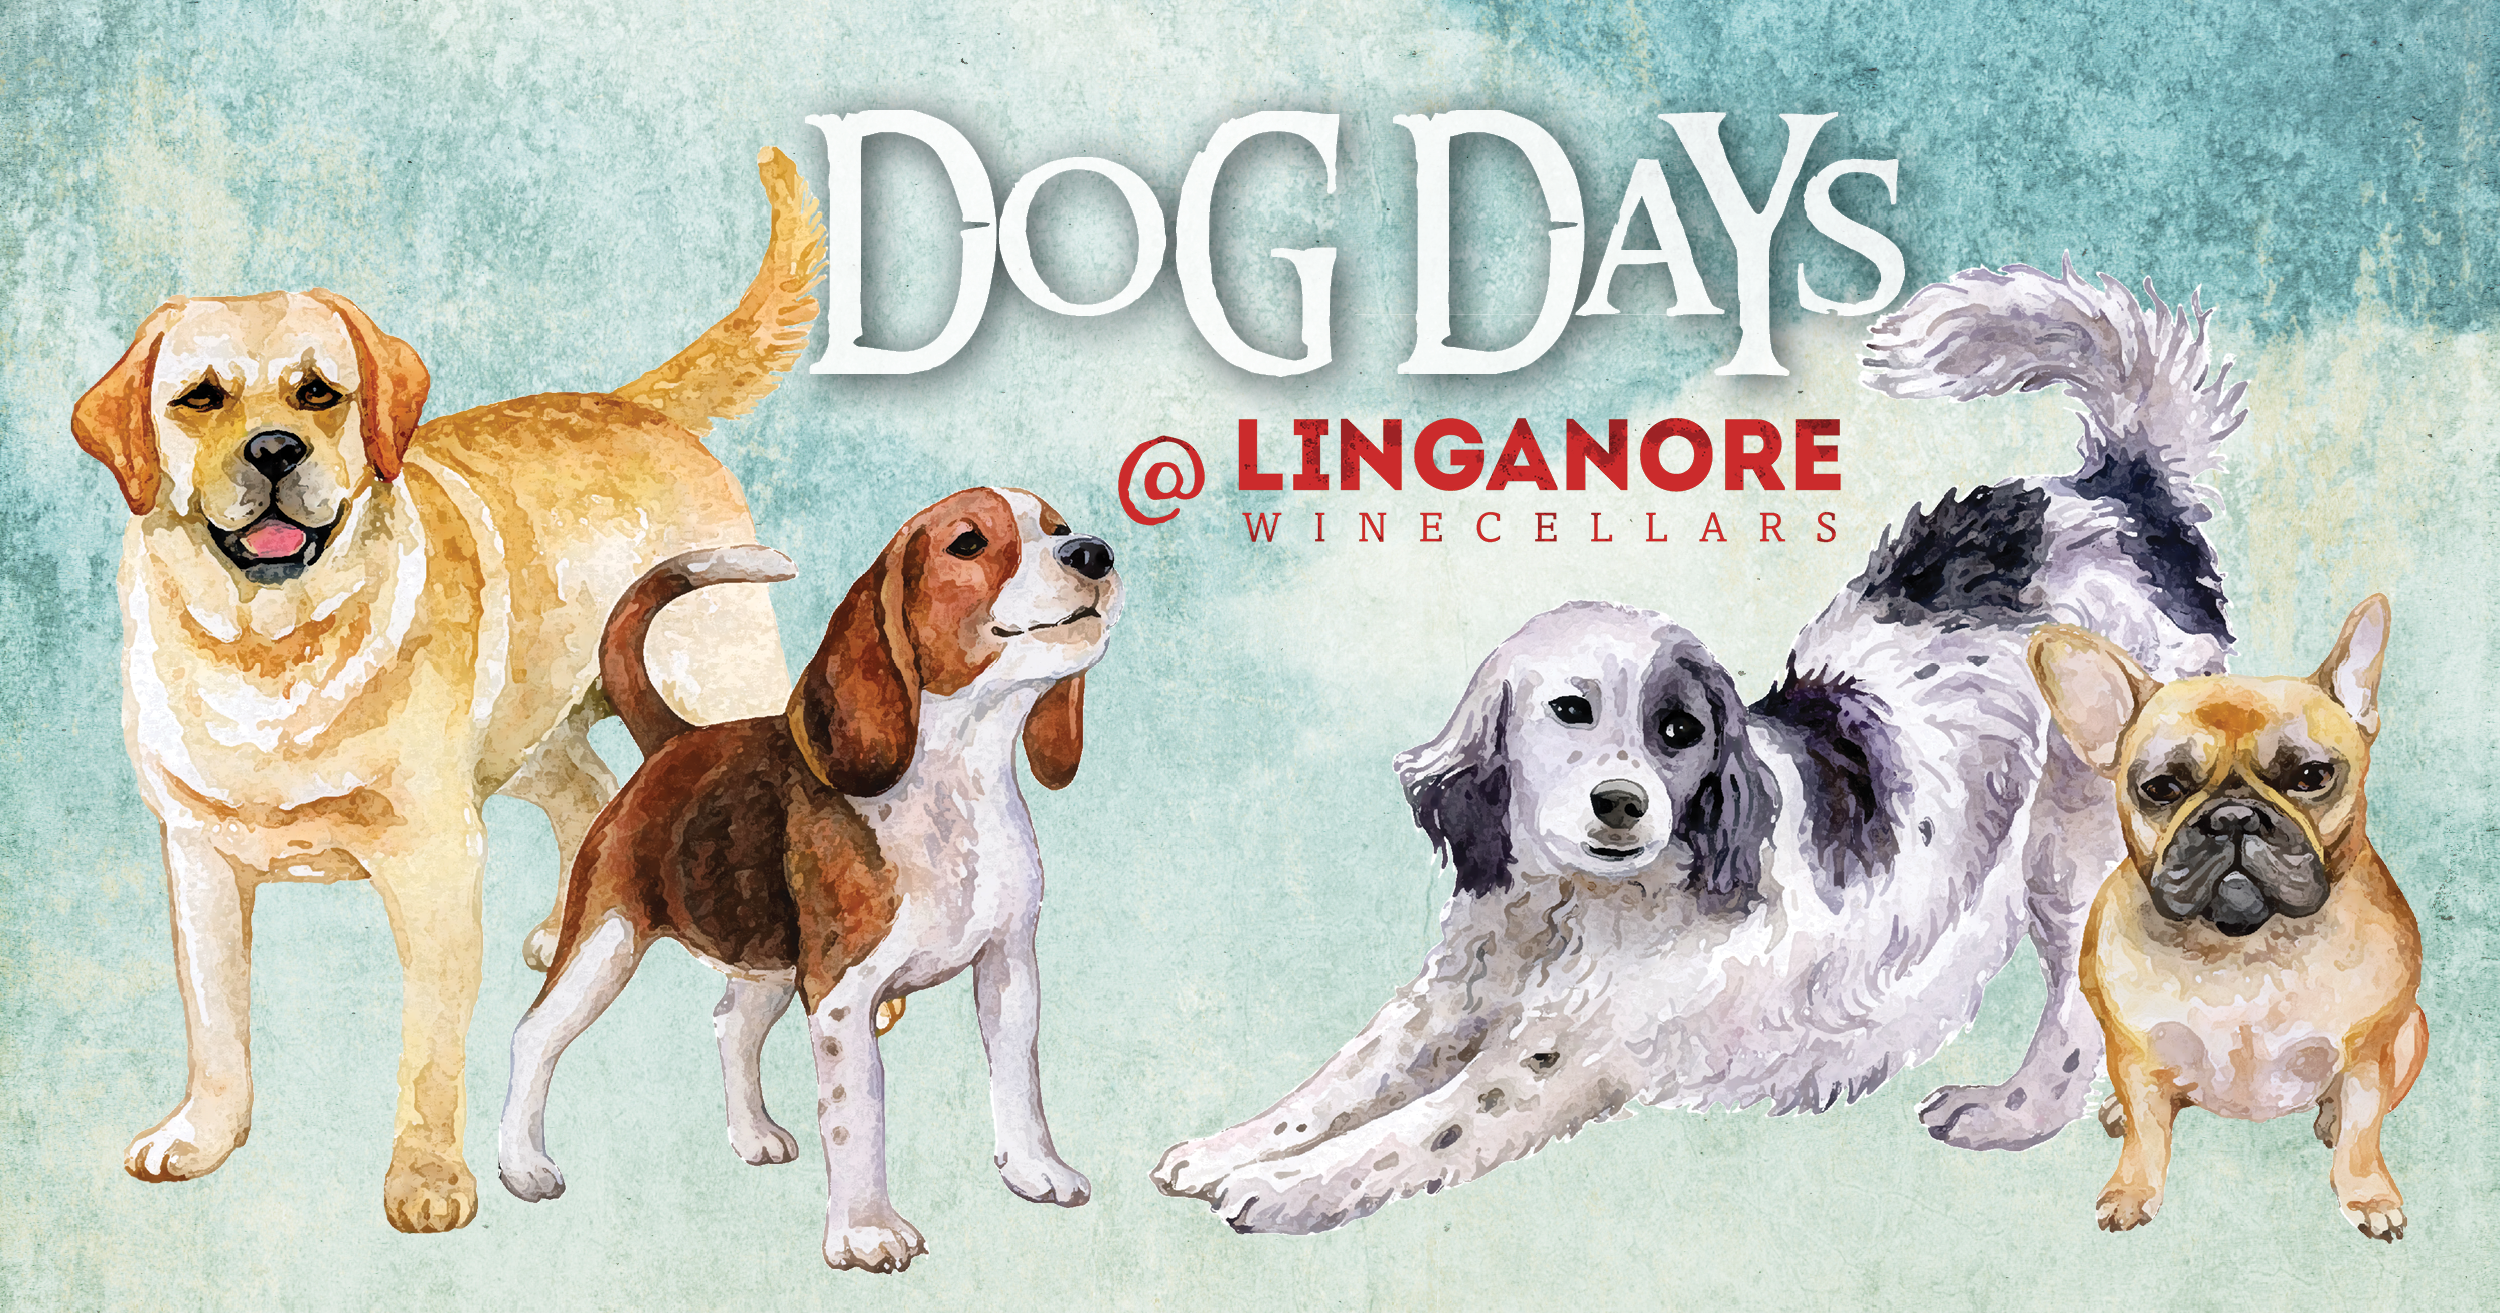 Dog Days at linganore bring your dogs to the winery